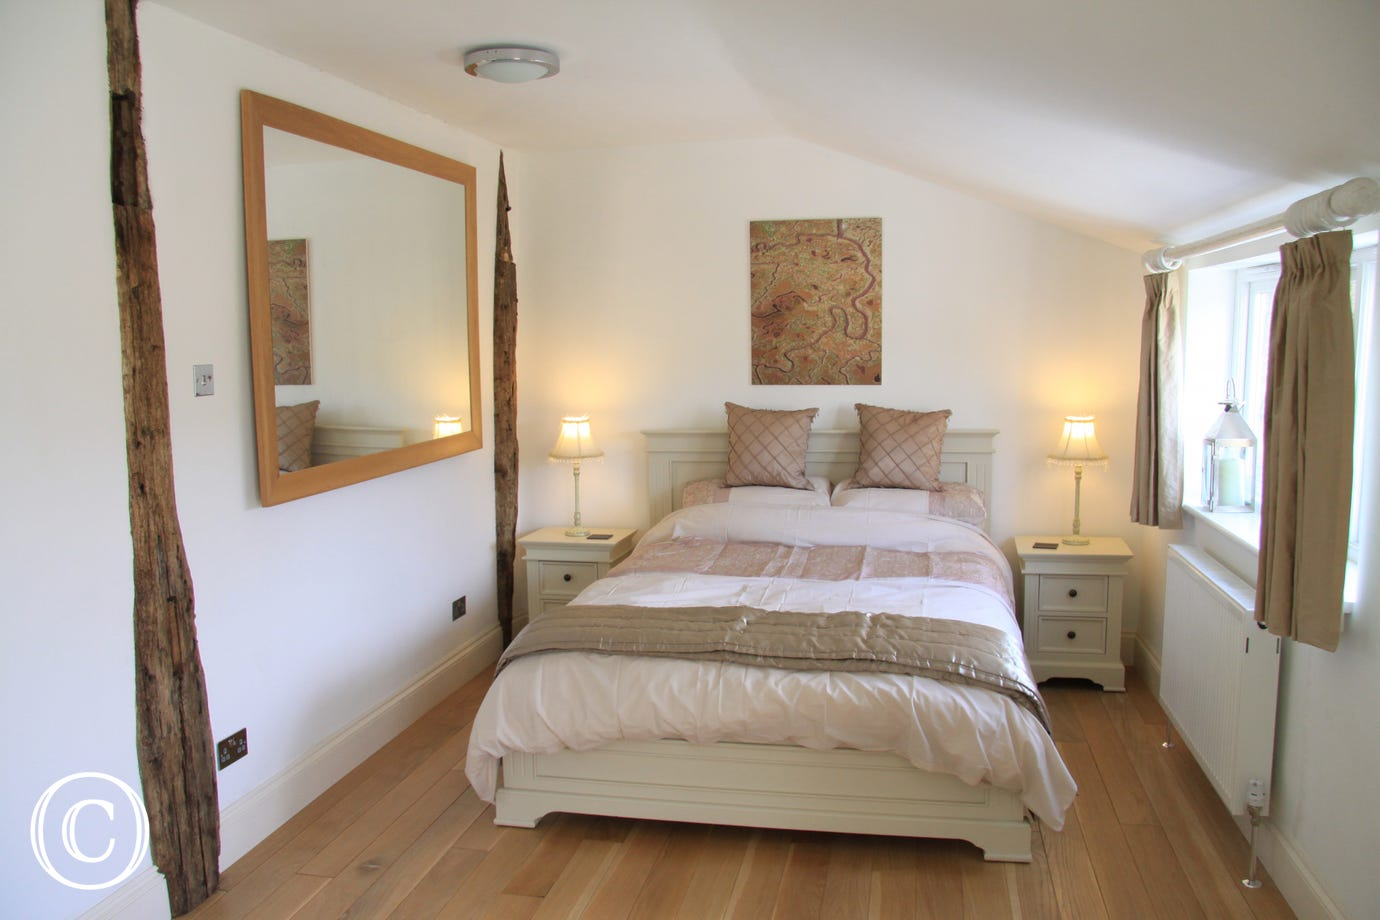 Double bed, cream linen and exposed woodwork.